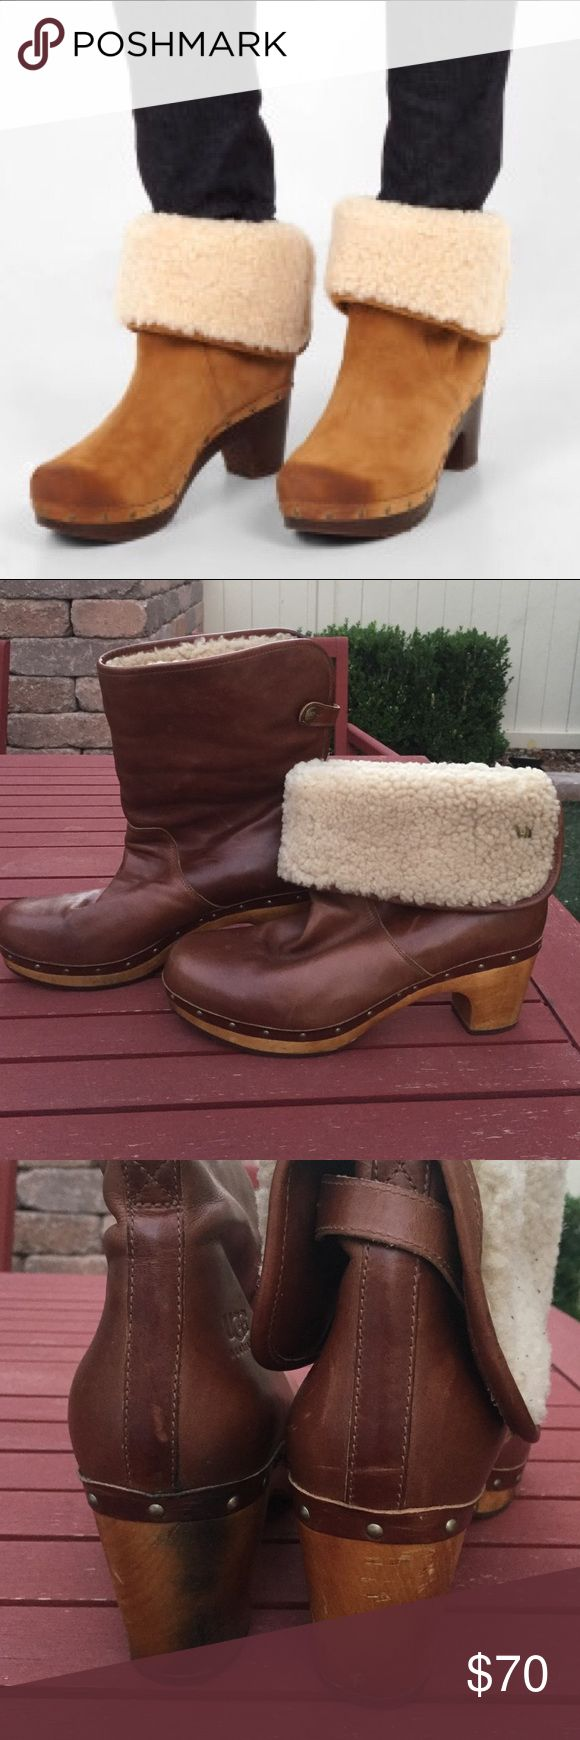 Ugg Lynnea Clog Sheepskin Boots Brown sz 10 This is a gorgeous pair of Ugg Australia Lynnea clog boots. Size 10. Some wear but has a lot of love to give this winter. Can be folded down or kept up. UGG Shoes Winter & Rain Boots